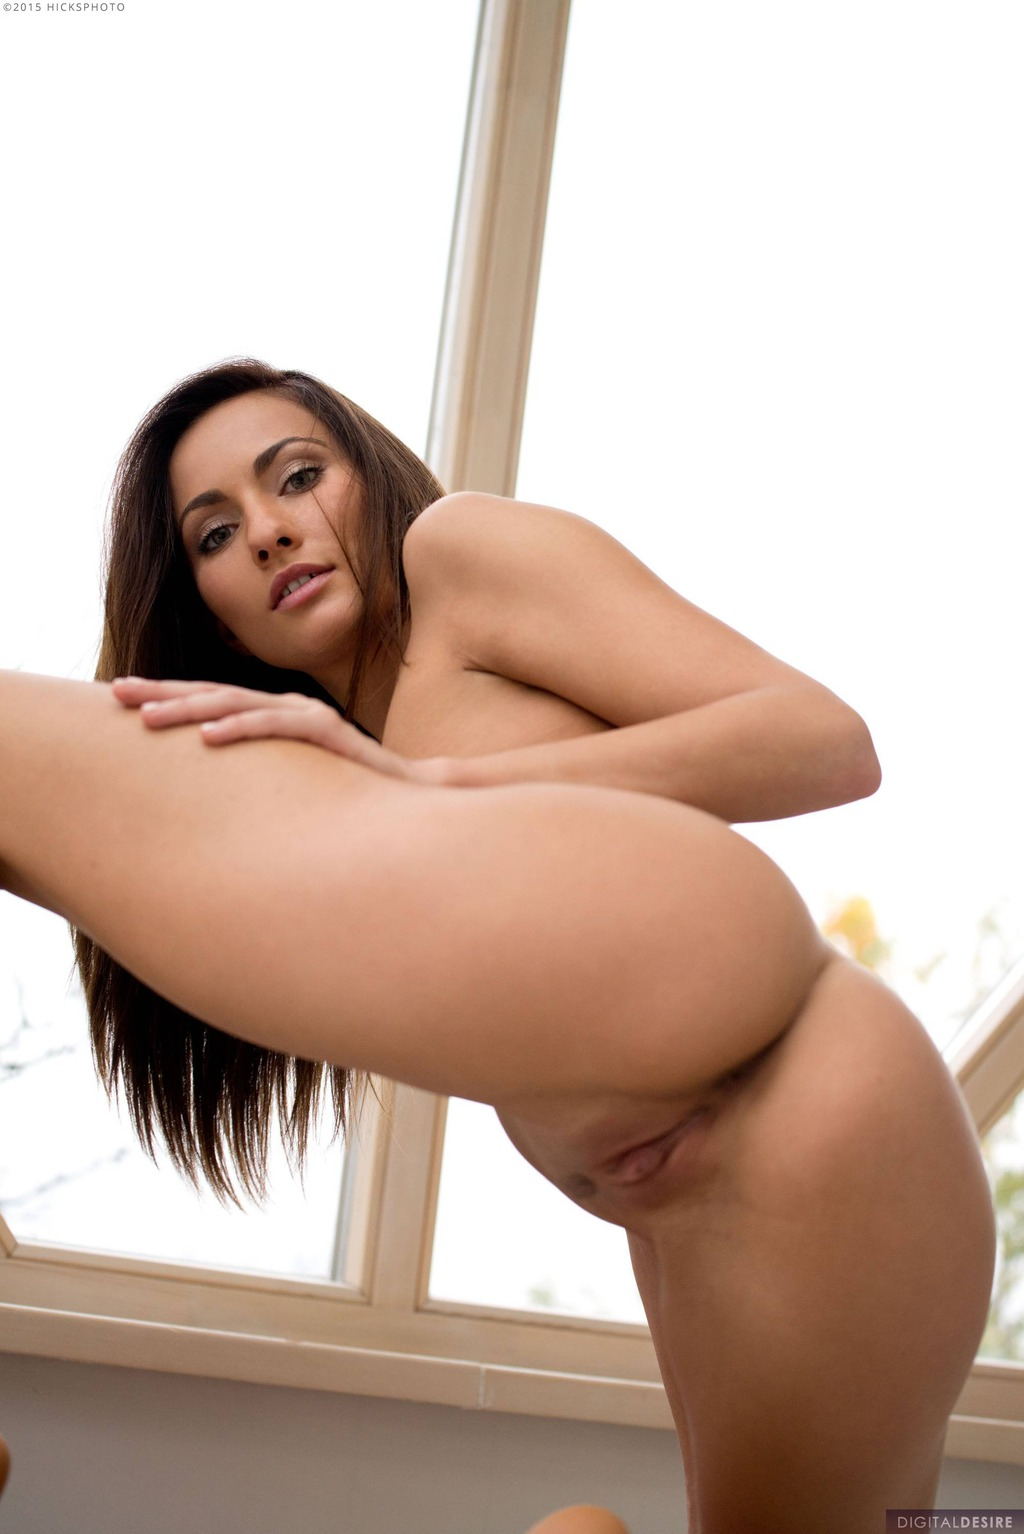 Sexart wowporn adult video